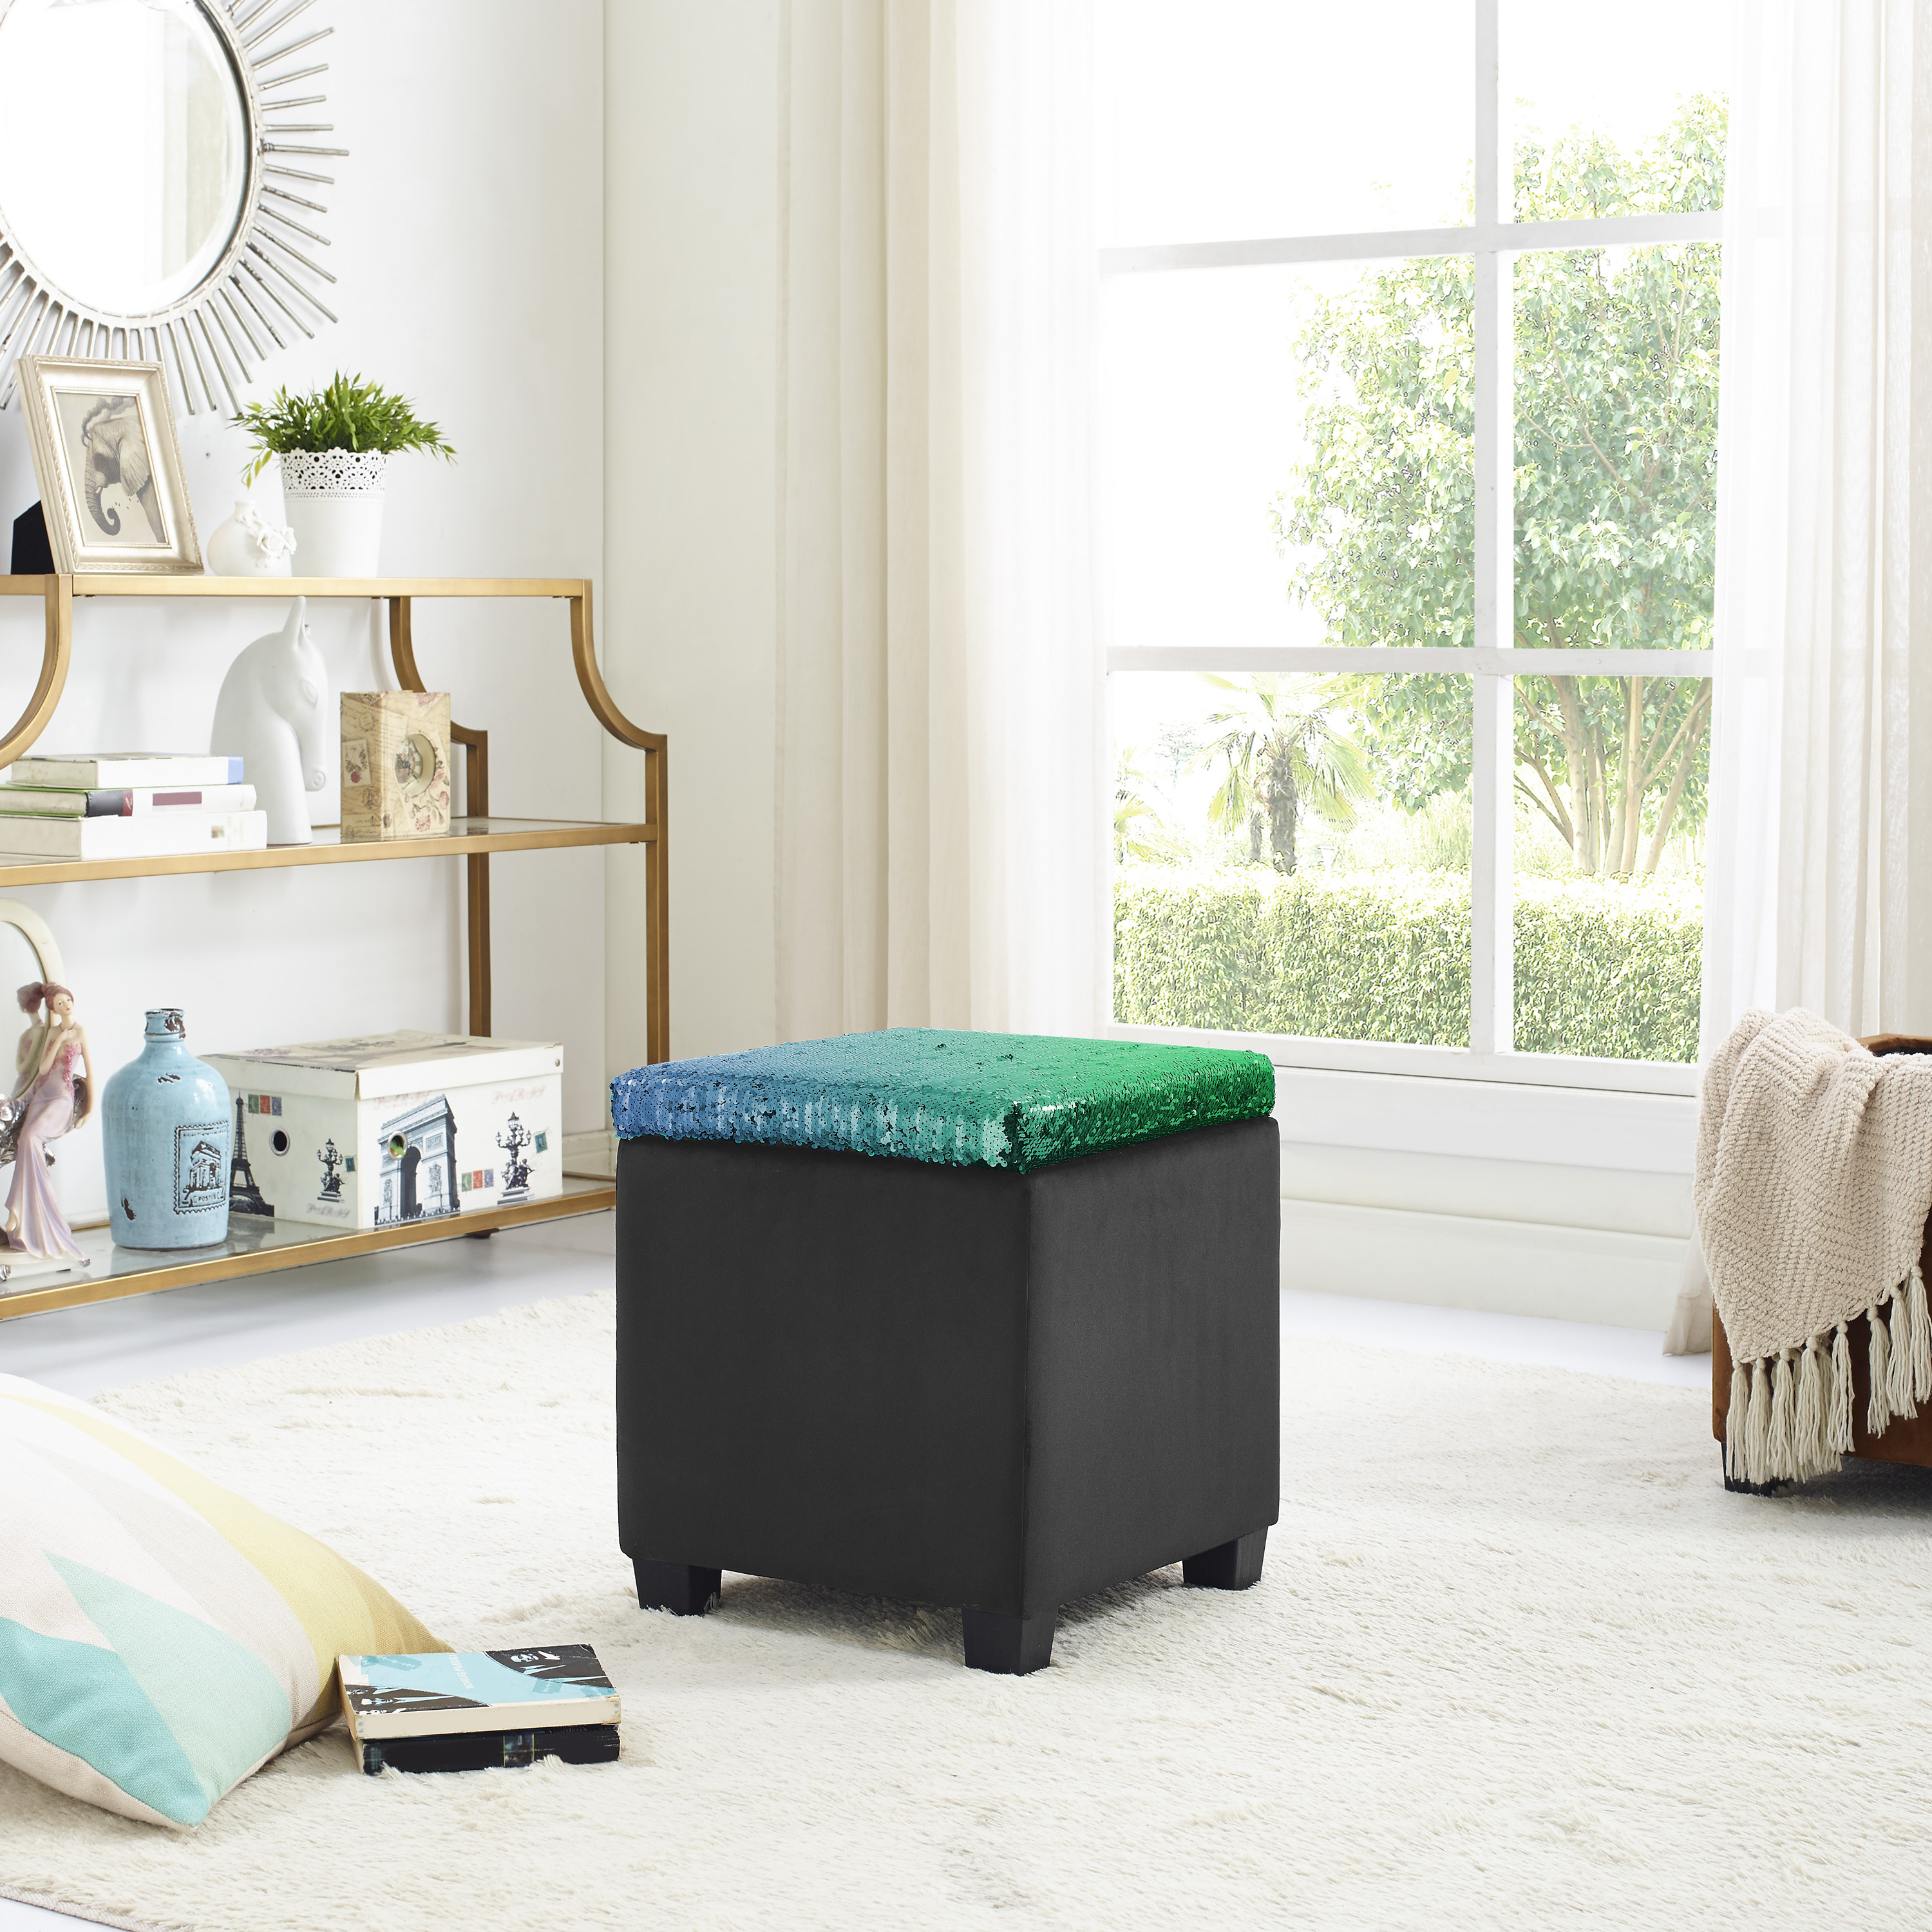 Mainstays Reversible Color Changing Sequin Storage Ottoman, Green/Black